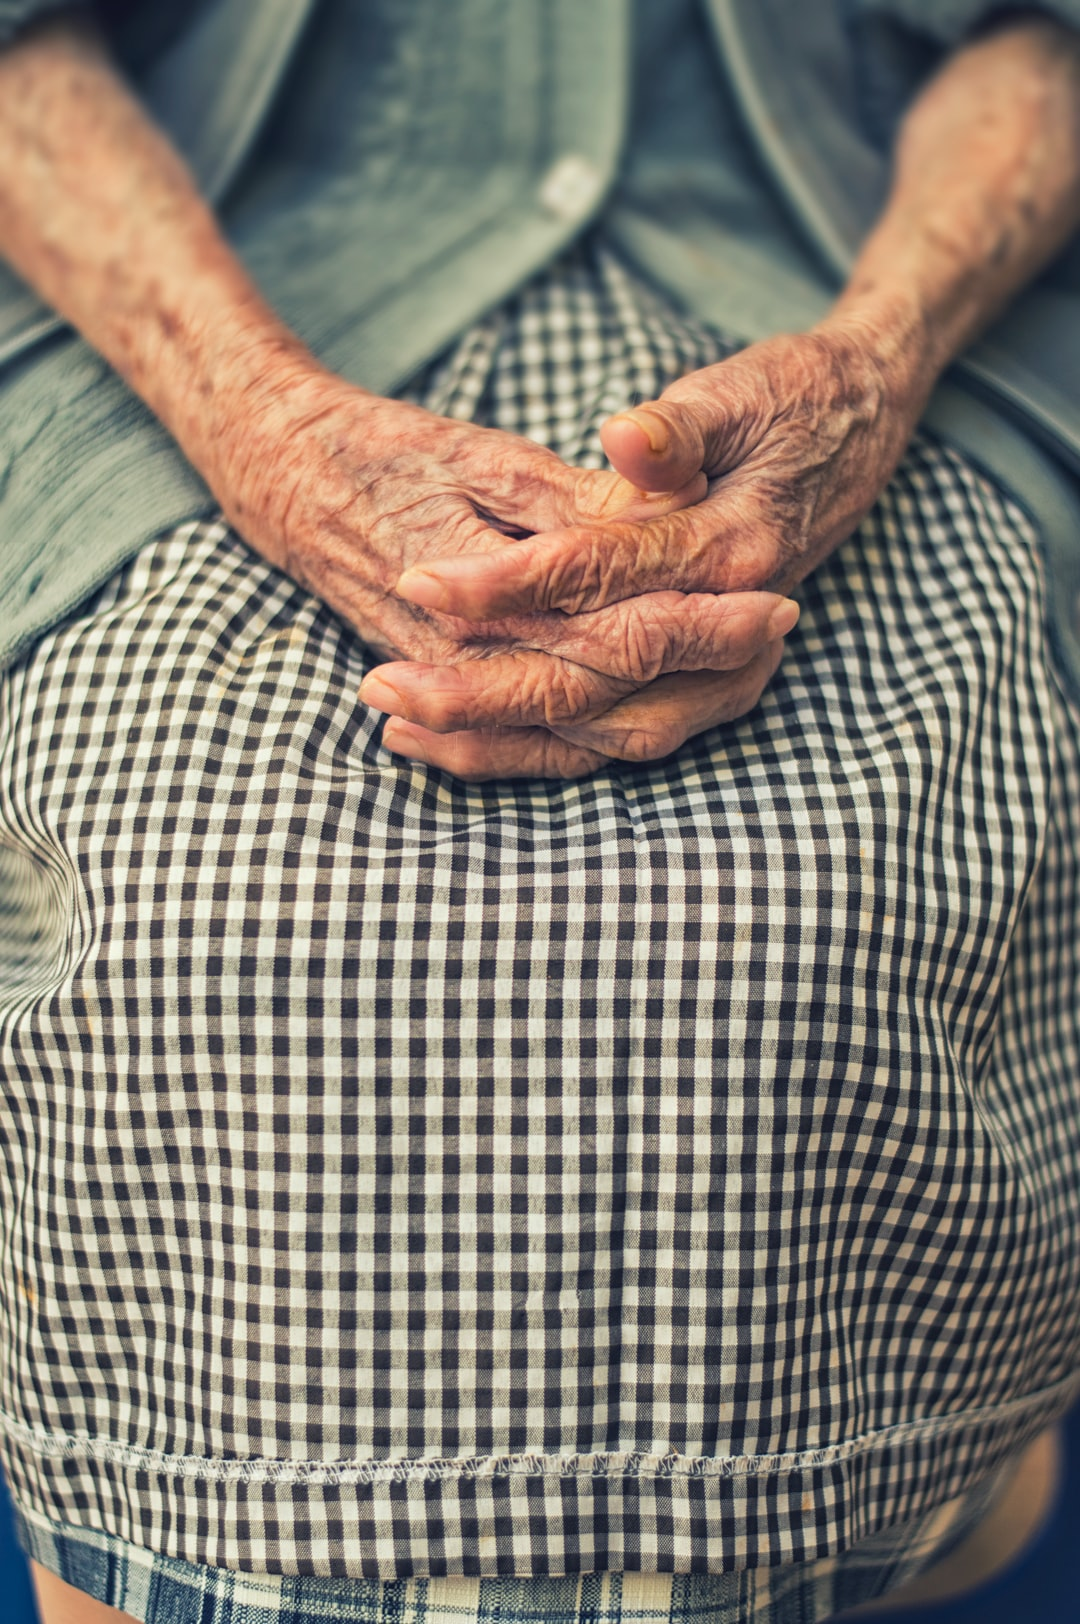 10 Benefits of Assisted Living